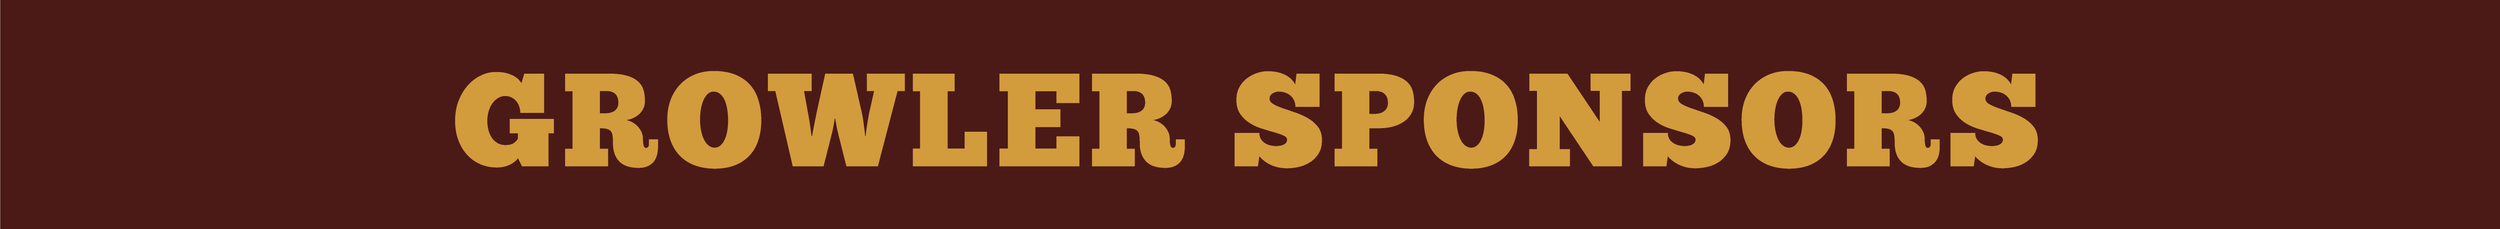 18_CRAFTED_SponsorEmailBanner-04.png